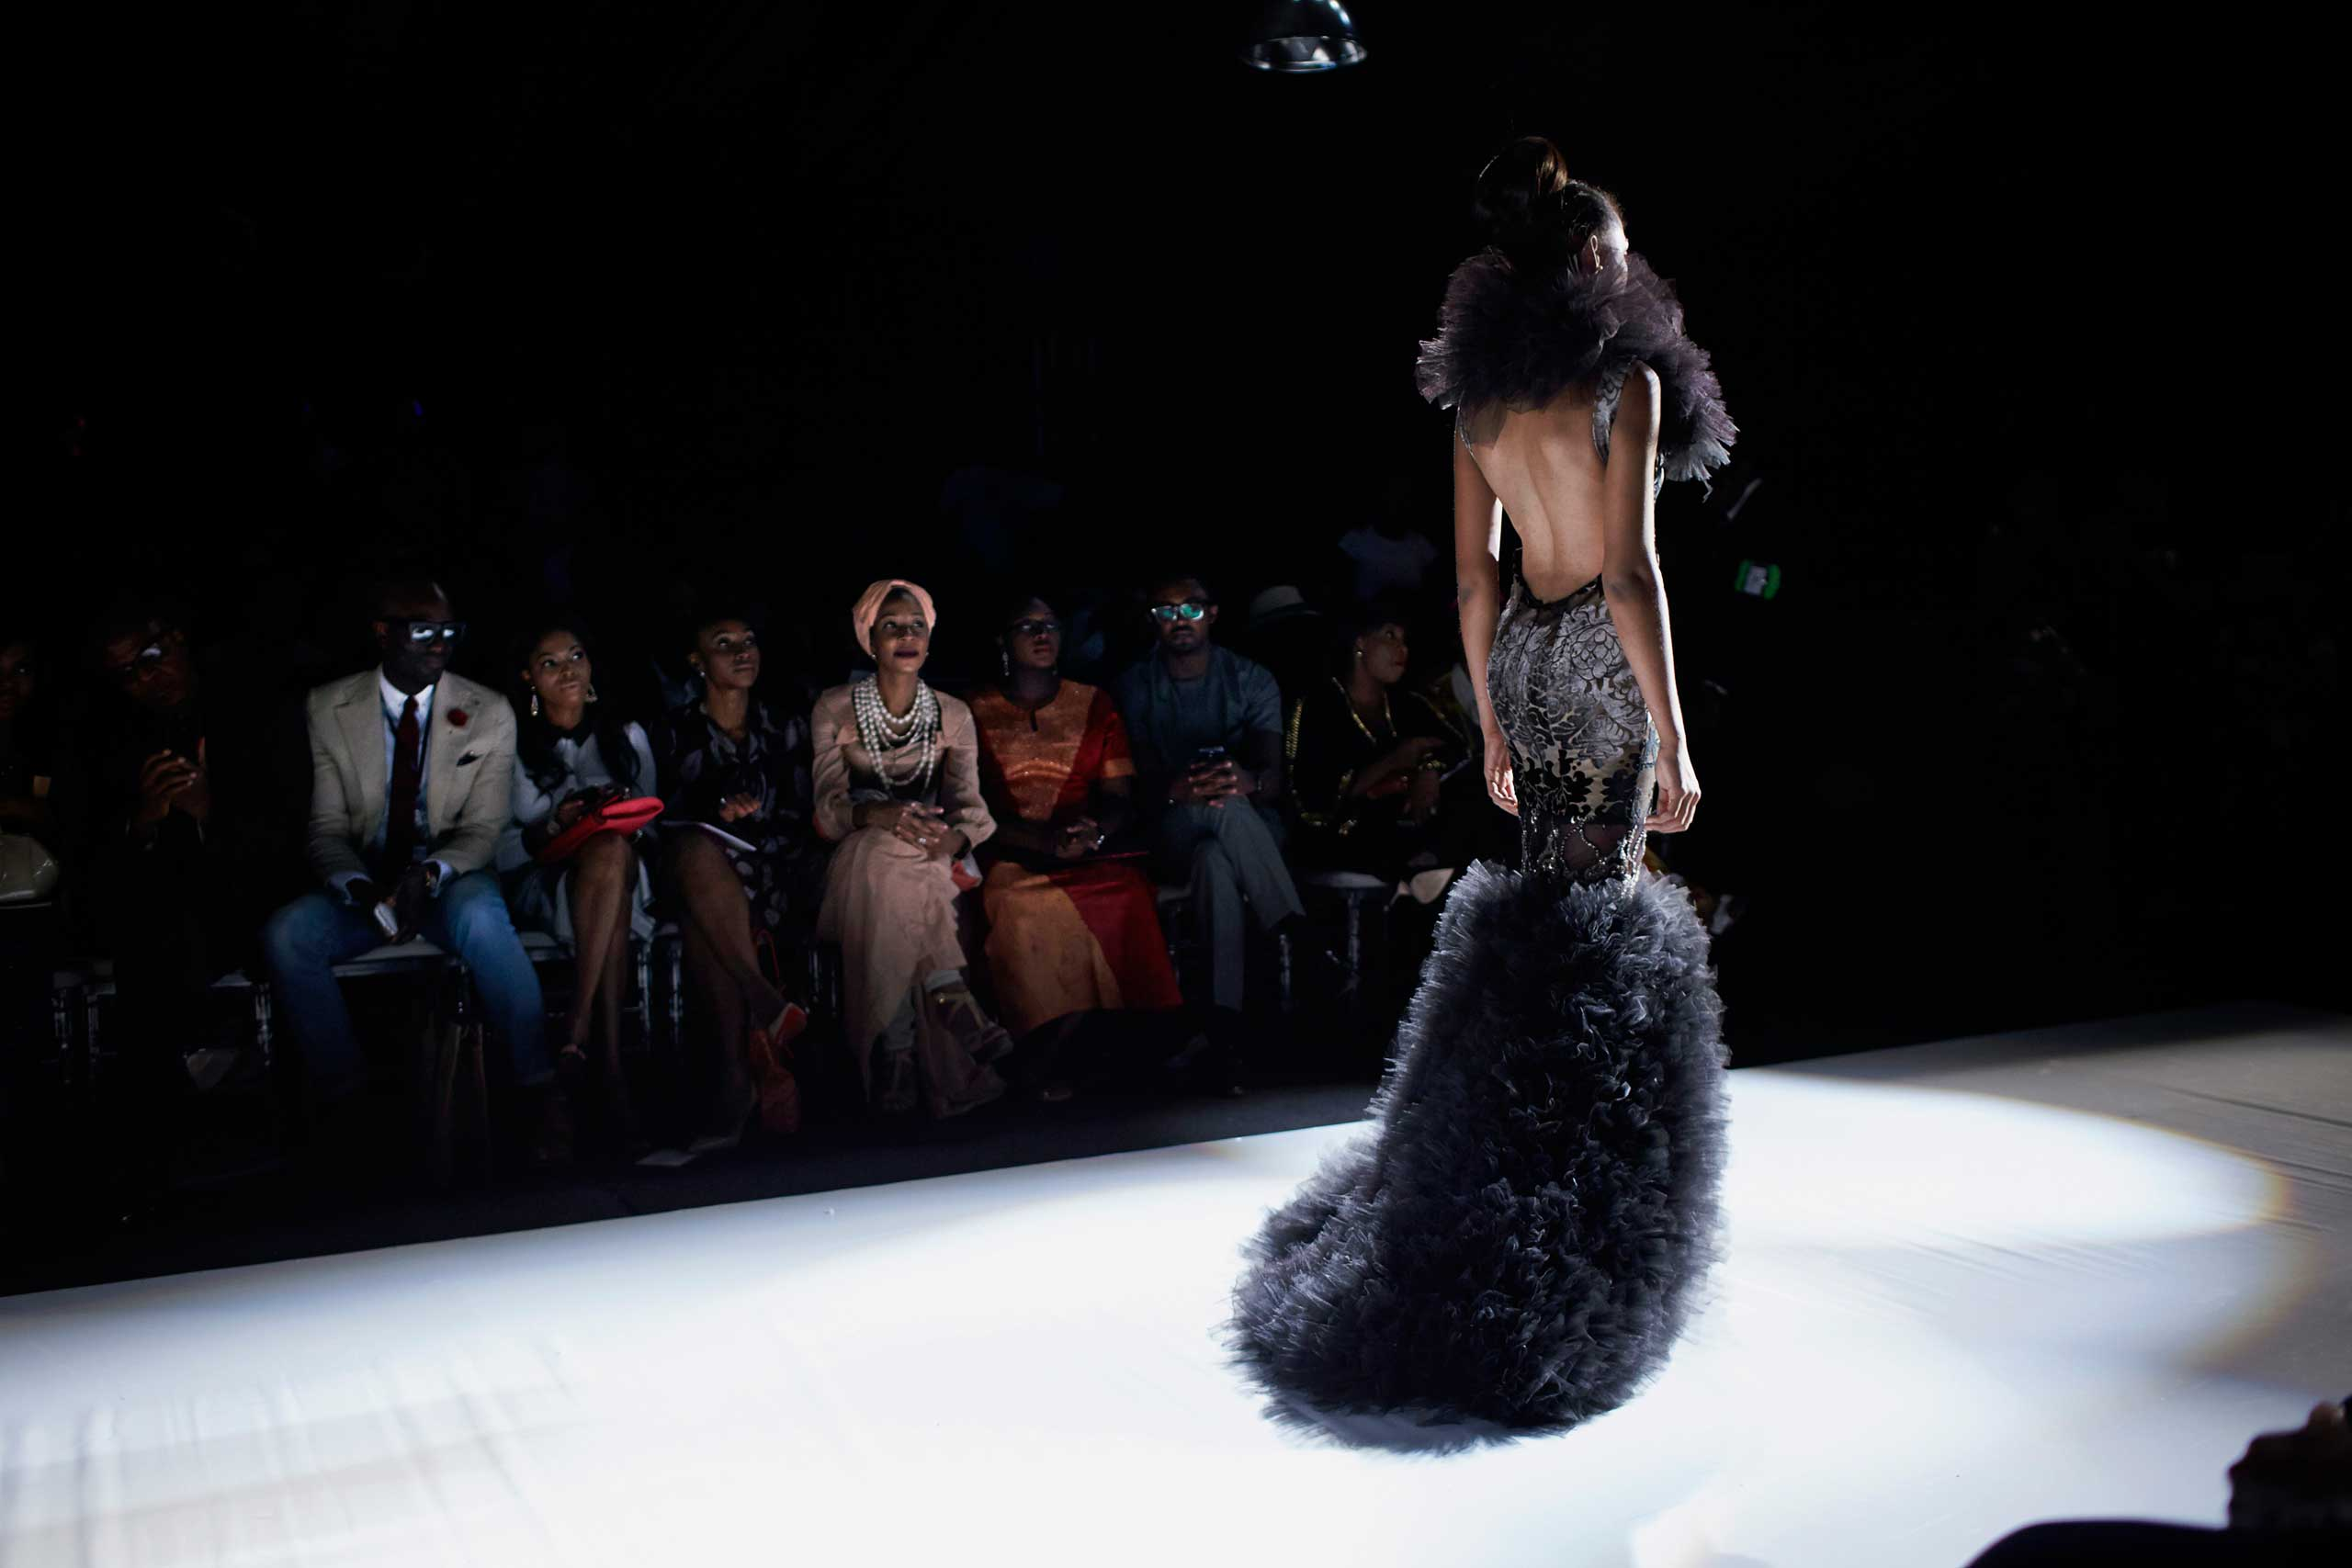 Models walk the catwalk during a show at Lagos Fashion Design Week on Oct. 26, 2013 in Lagos, Nigeria.